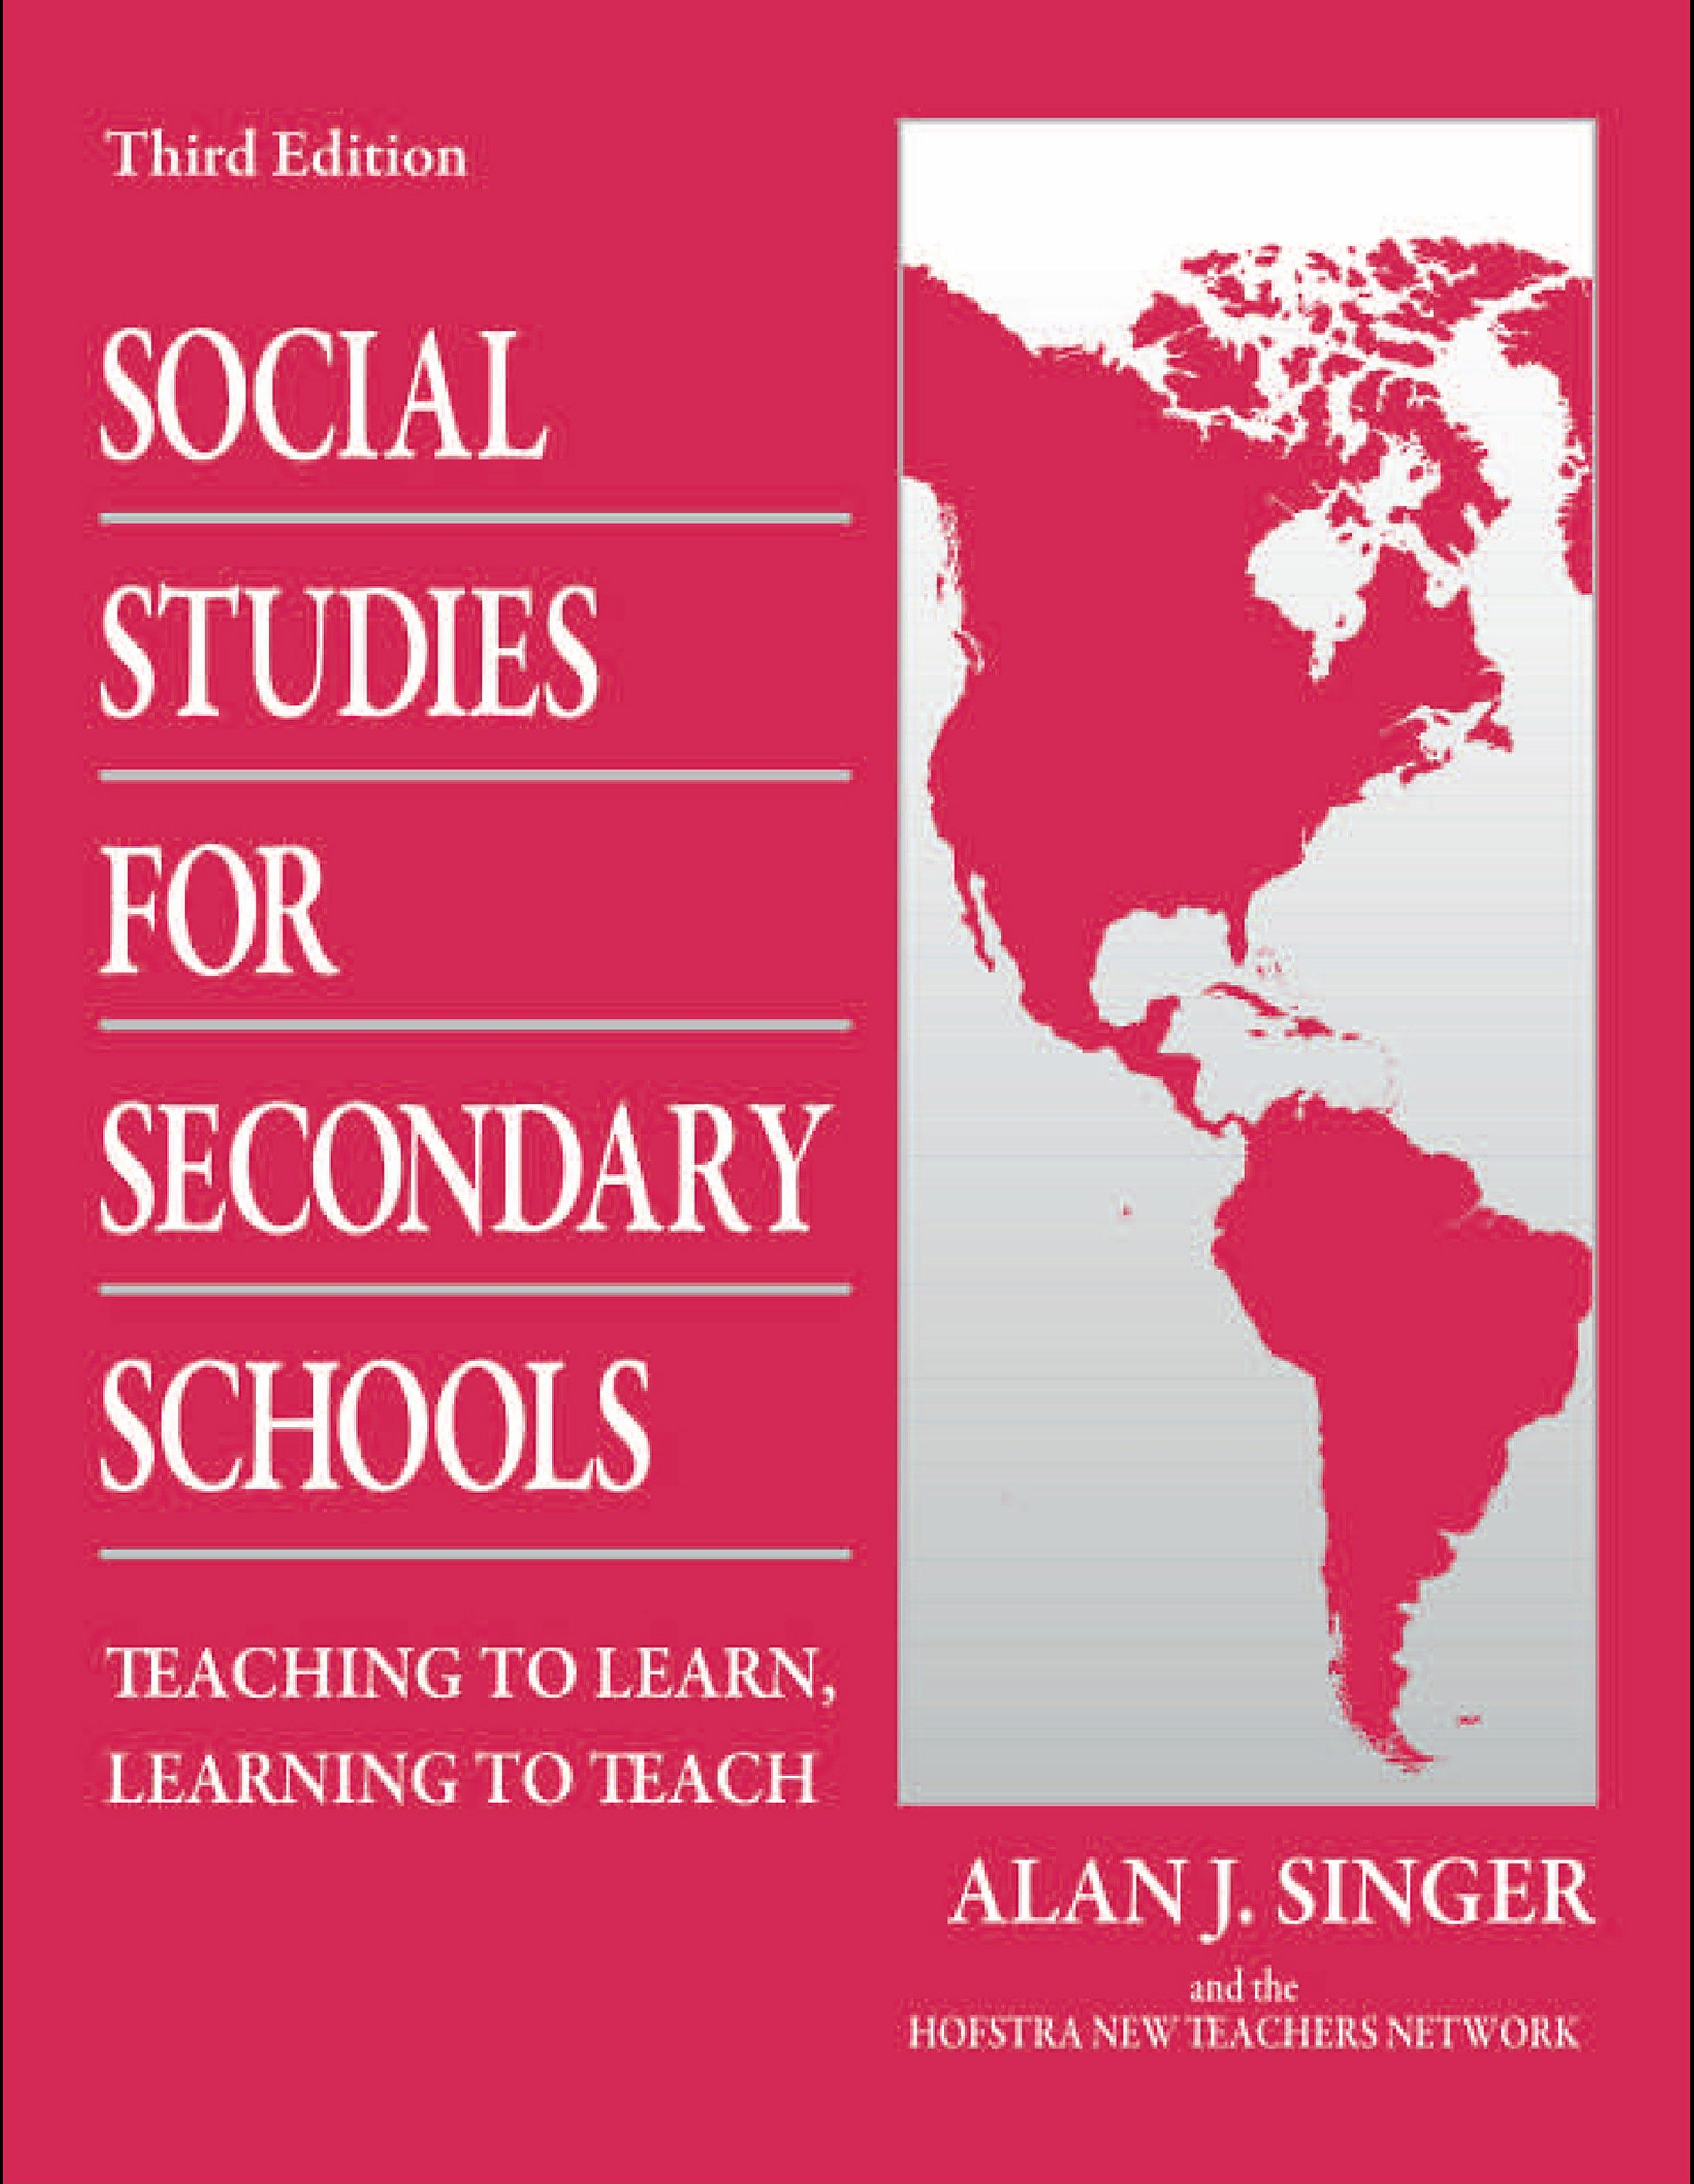 Social Studies for Secondary Schools: Teaching to Learn, Learning to Teach